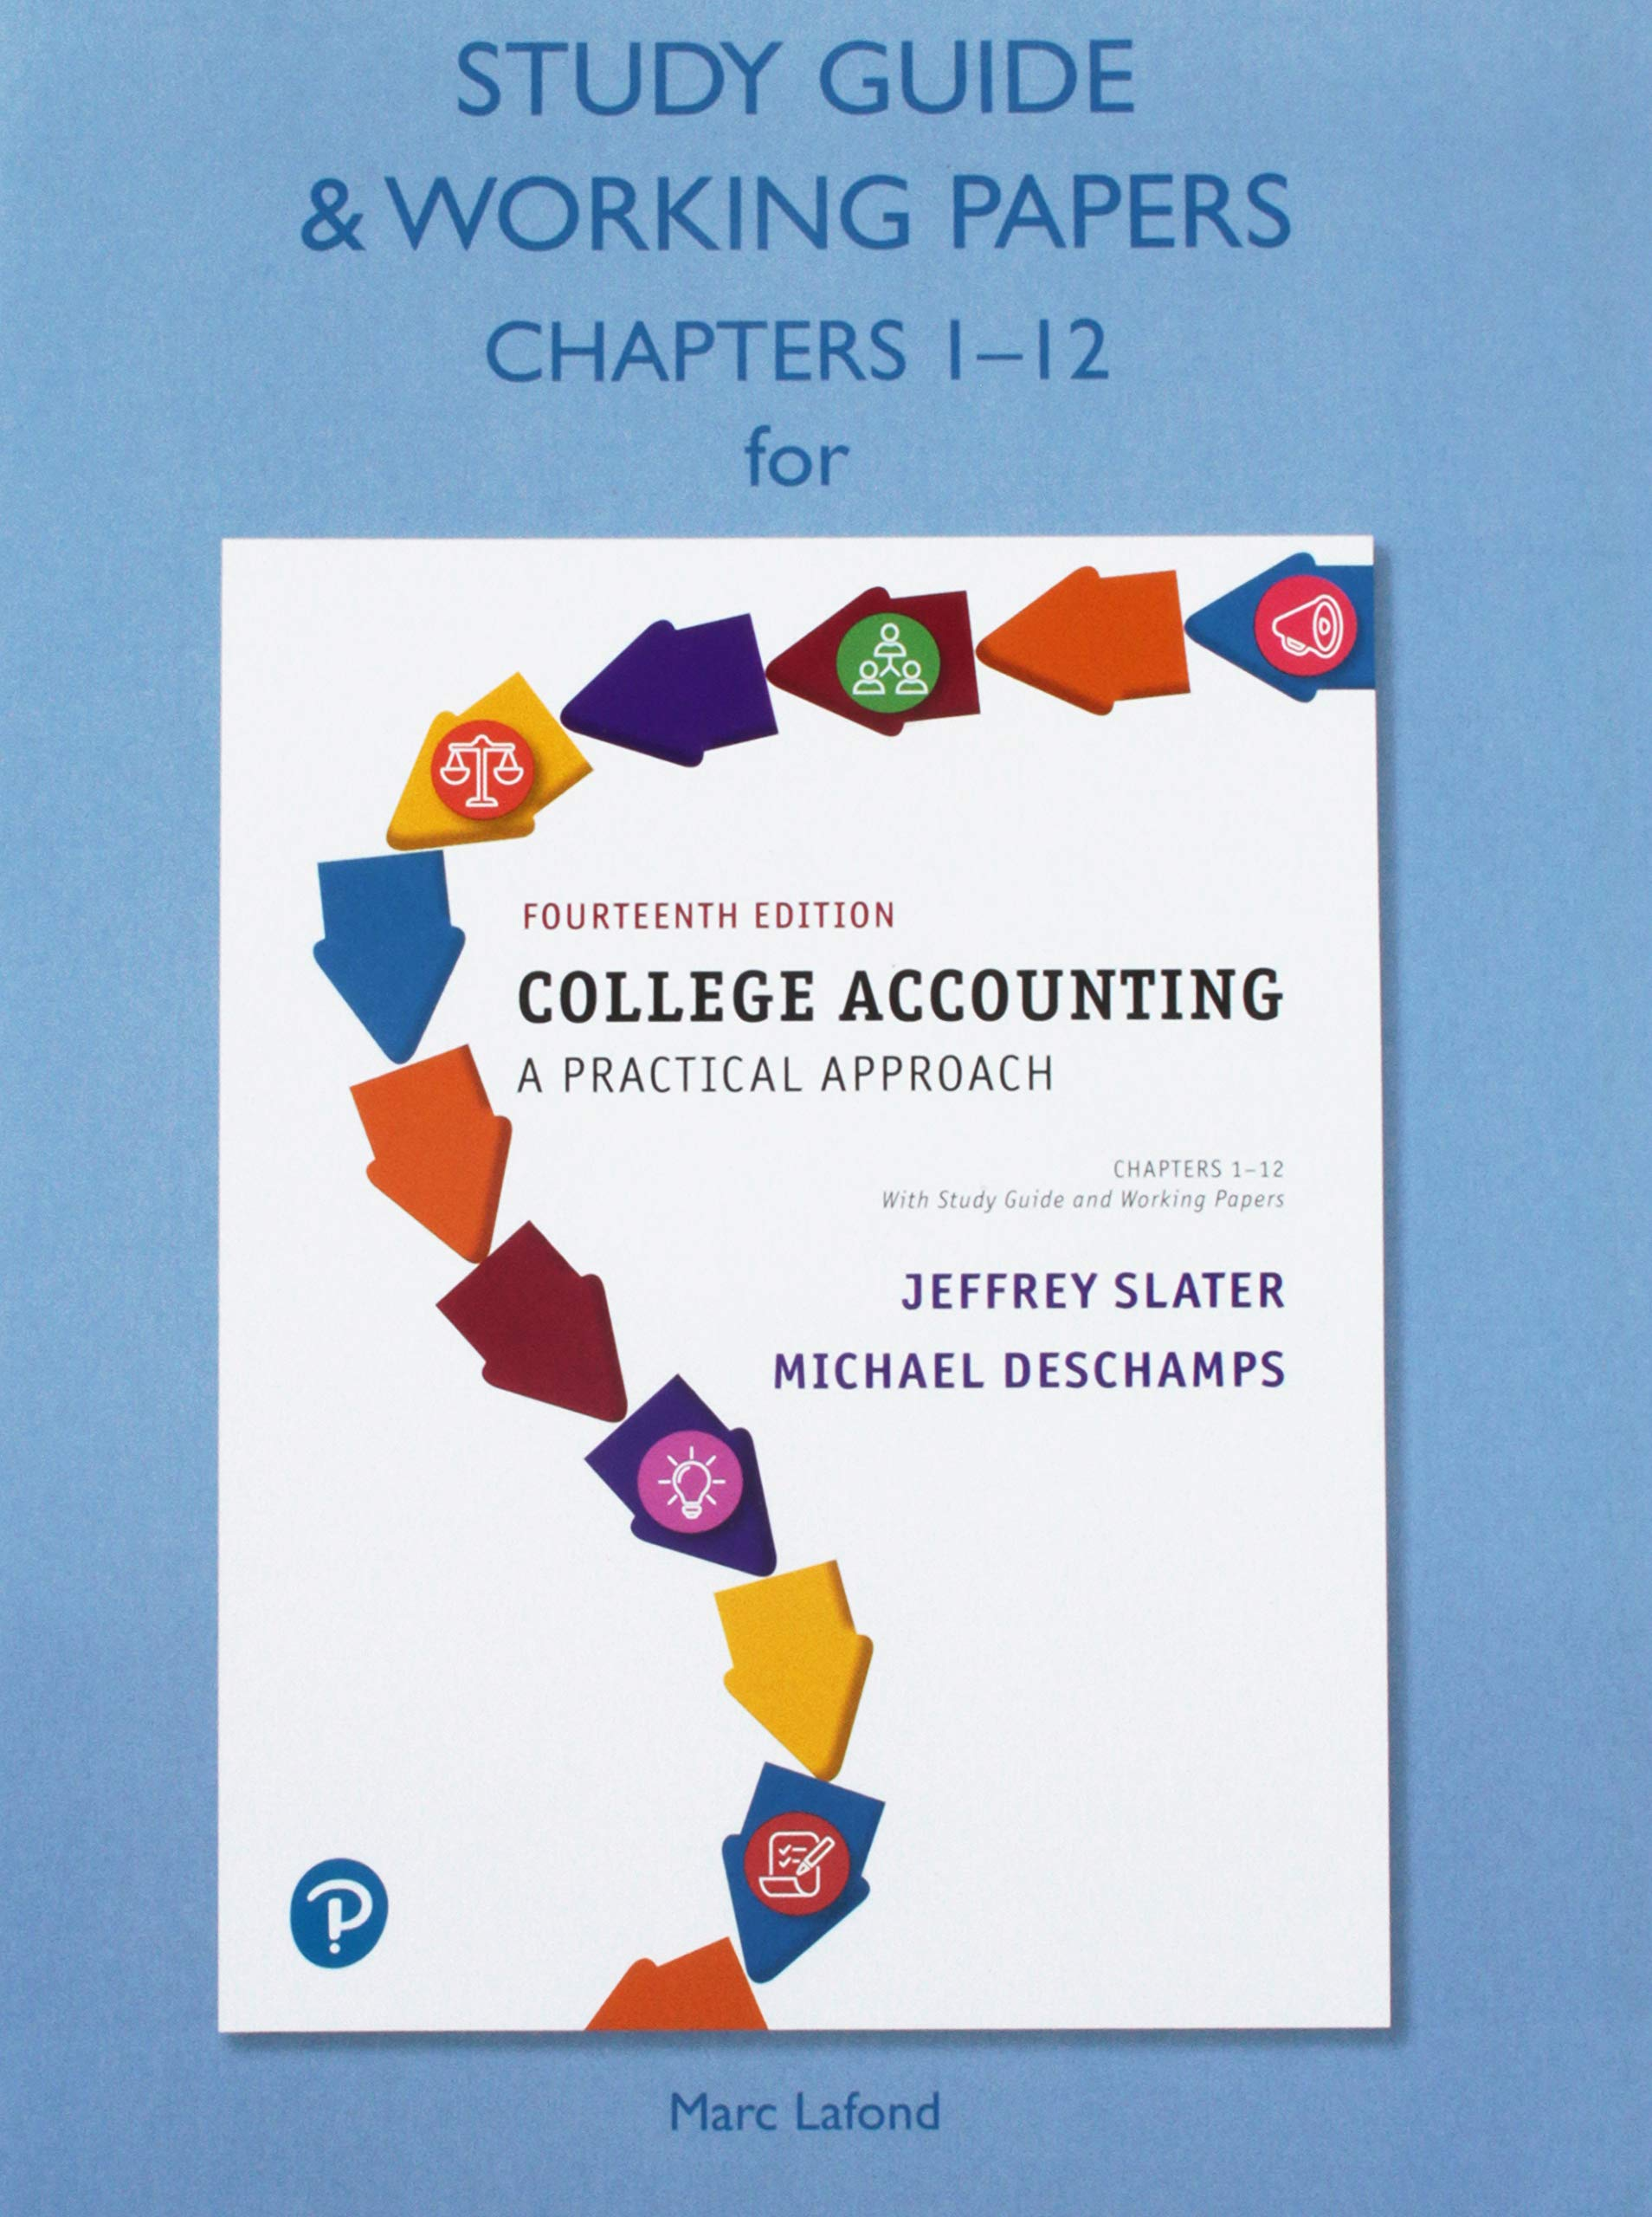 Study Guide & Working Papers for College Accounting: A Practical Approach,  Chapters 1-12: Jeffrey Slater, Mike Deschamps: 9780134734439: Books -  Amazon.ca